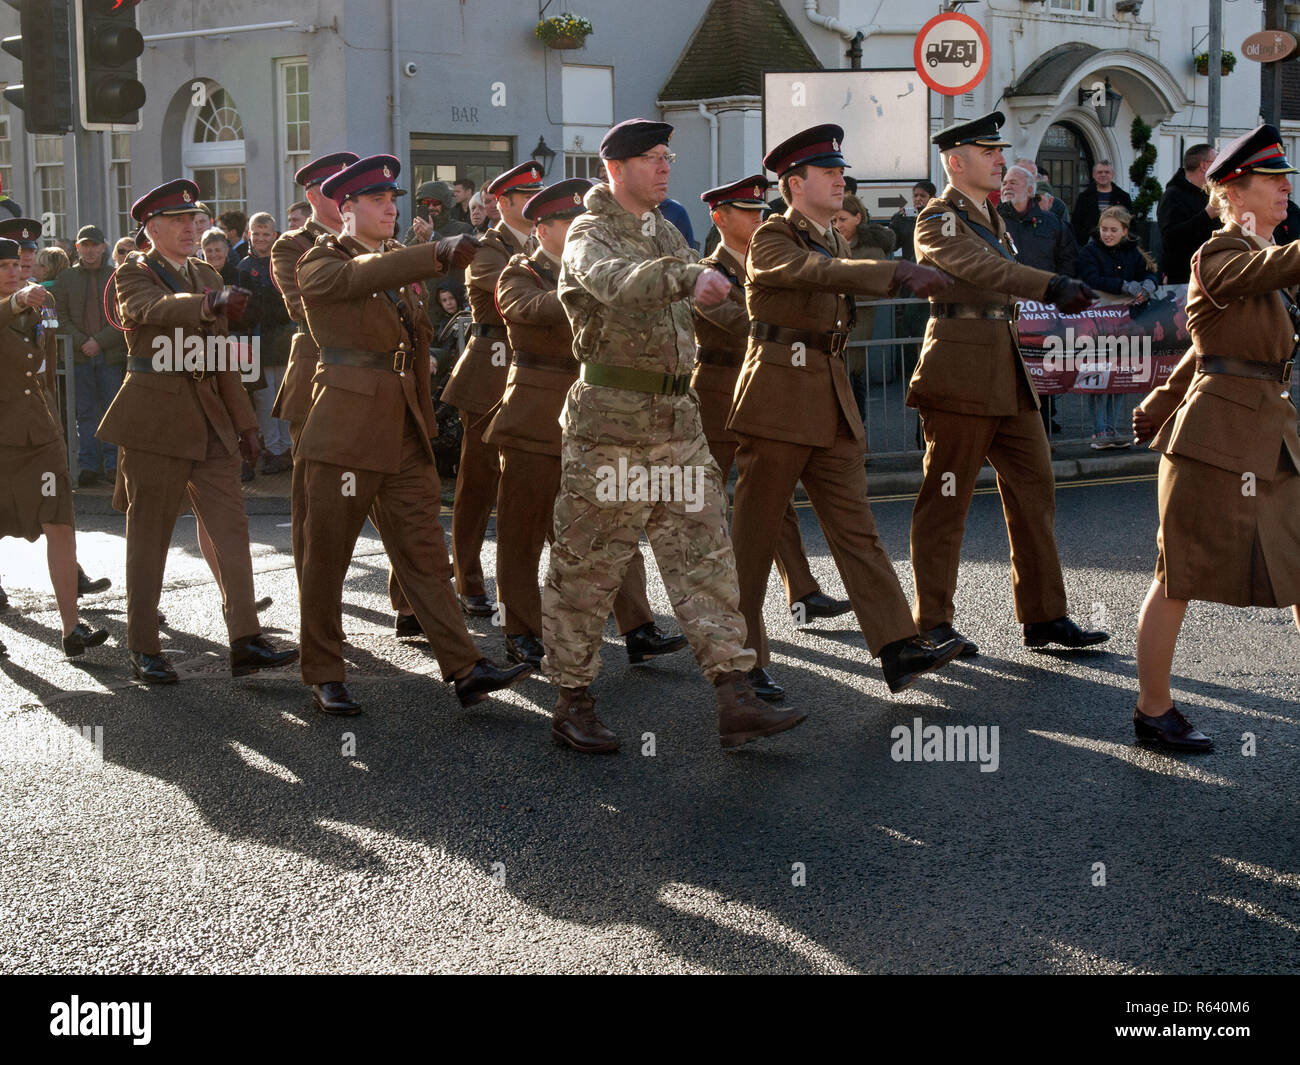 Soldiers marching through the village of Rottingdean on Remembrance Day - Stock Image